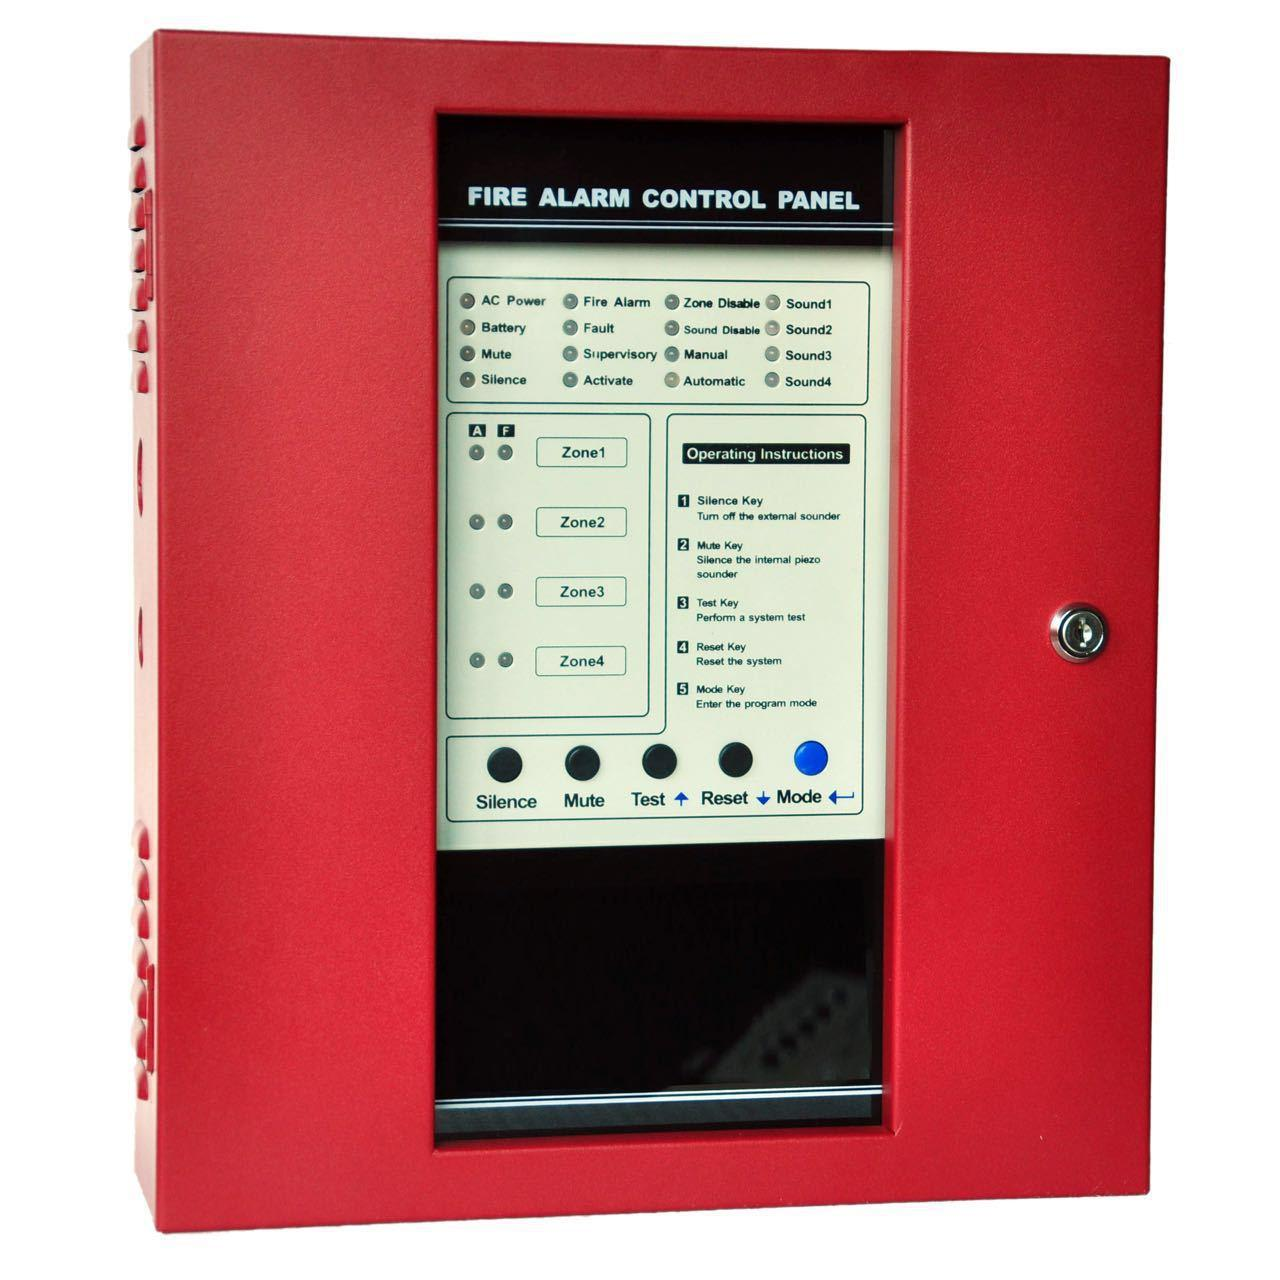 Hot Products 4 Zone Security Alarm Control Panel Conventional Fire For Home School Shop